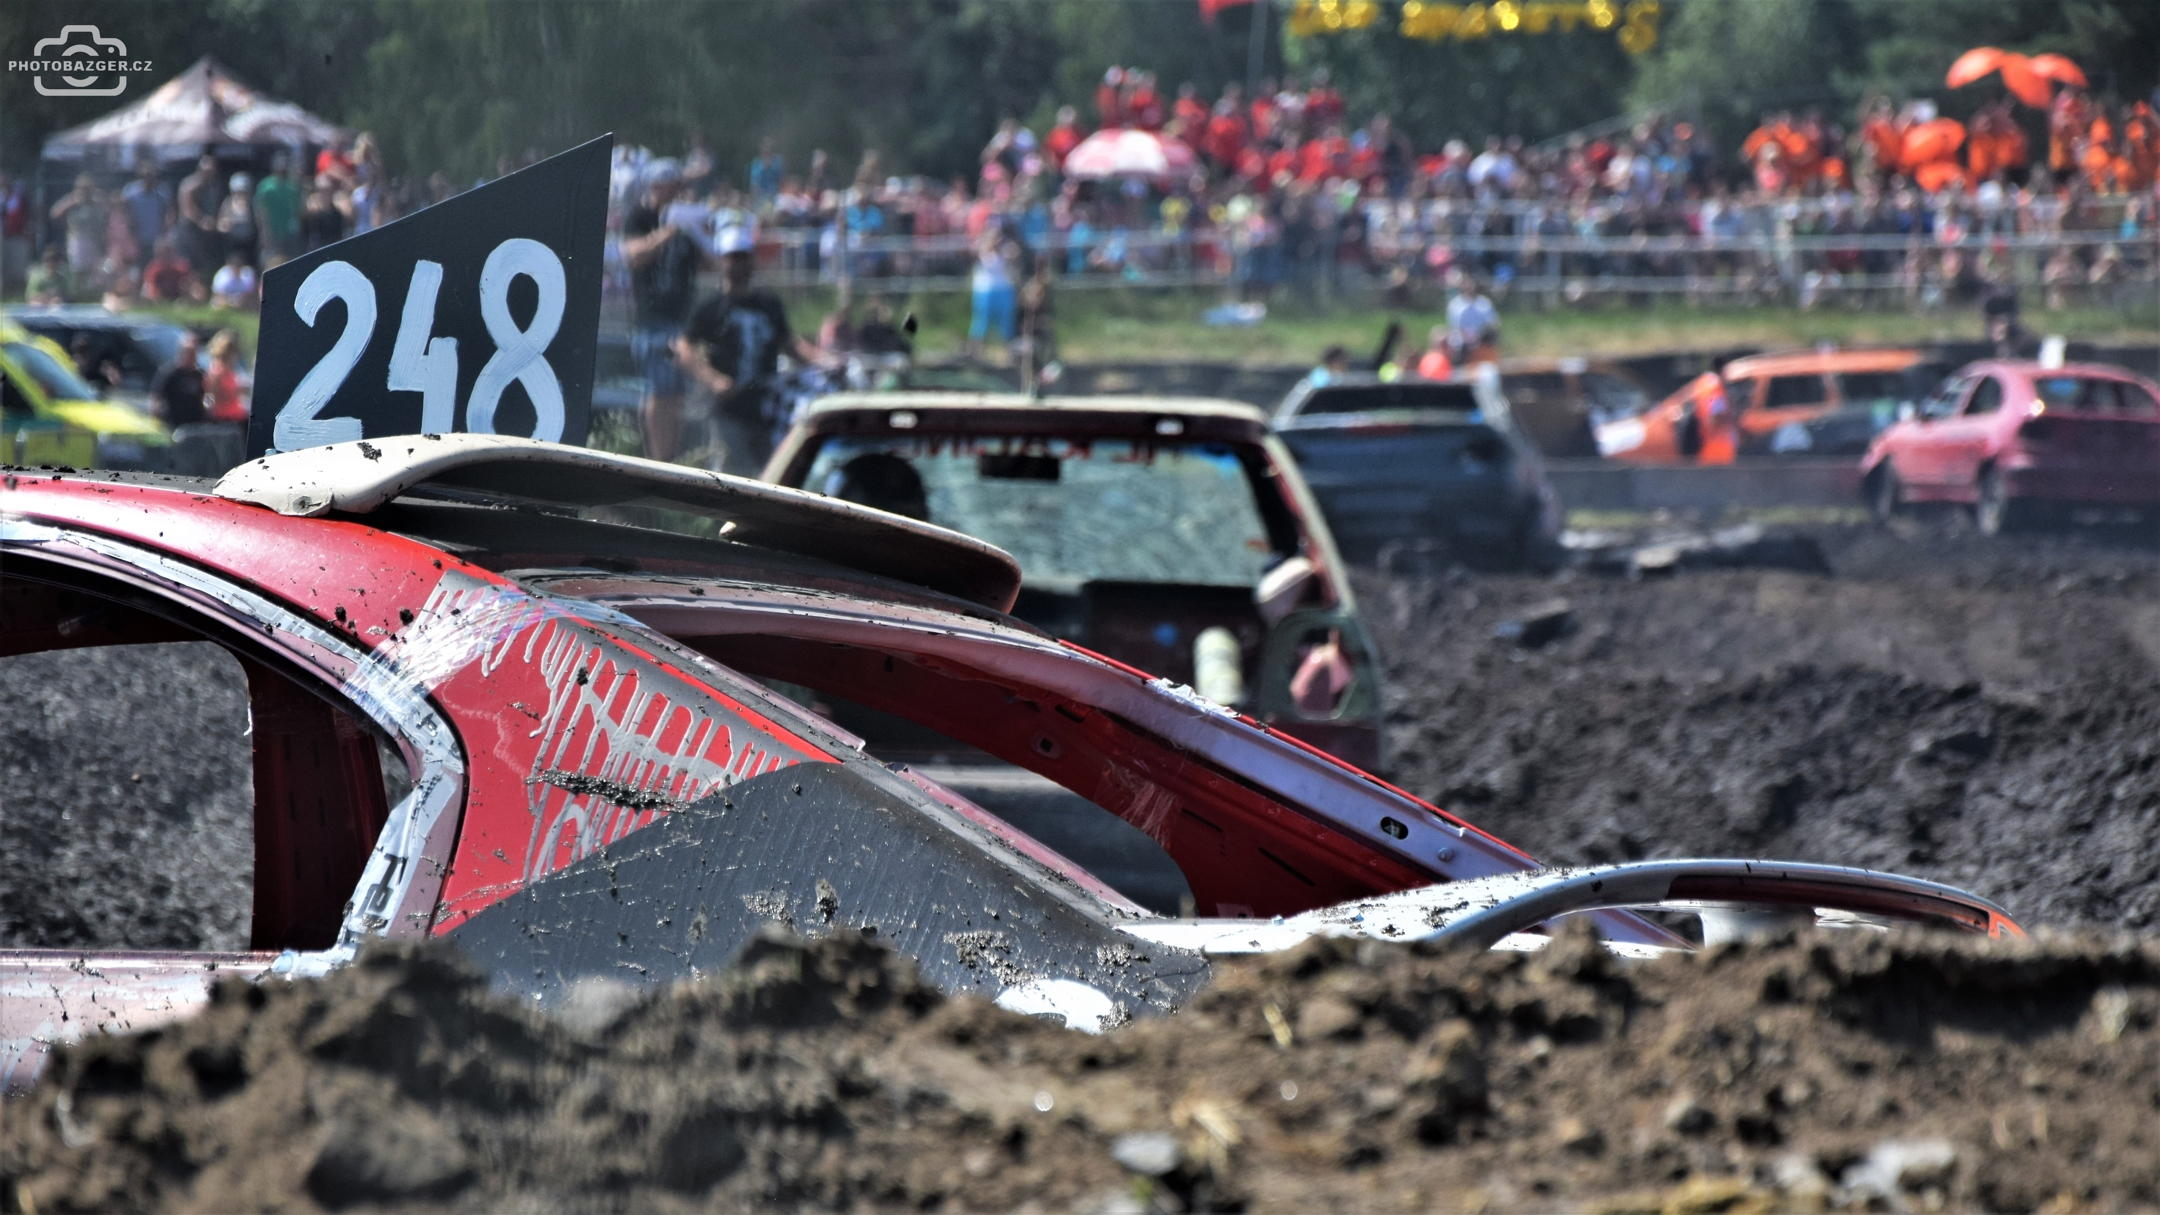 DestructionDerby (33)